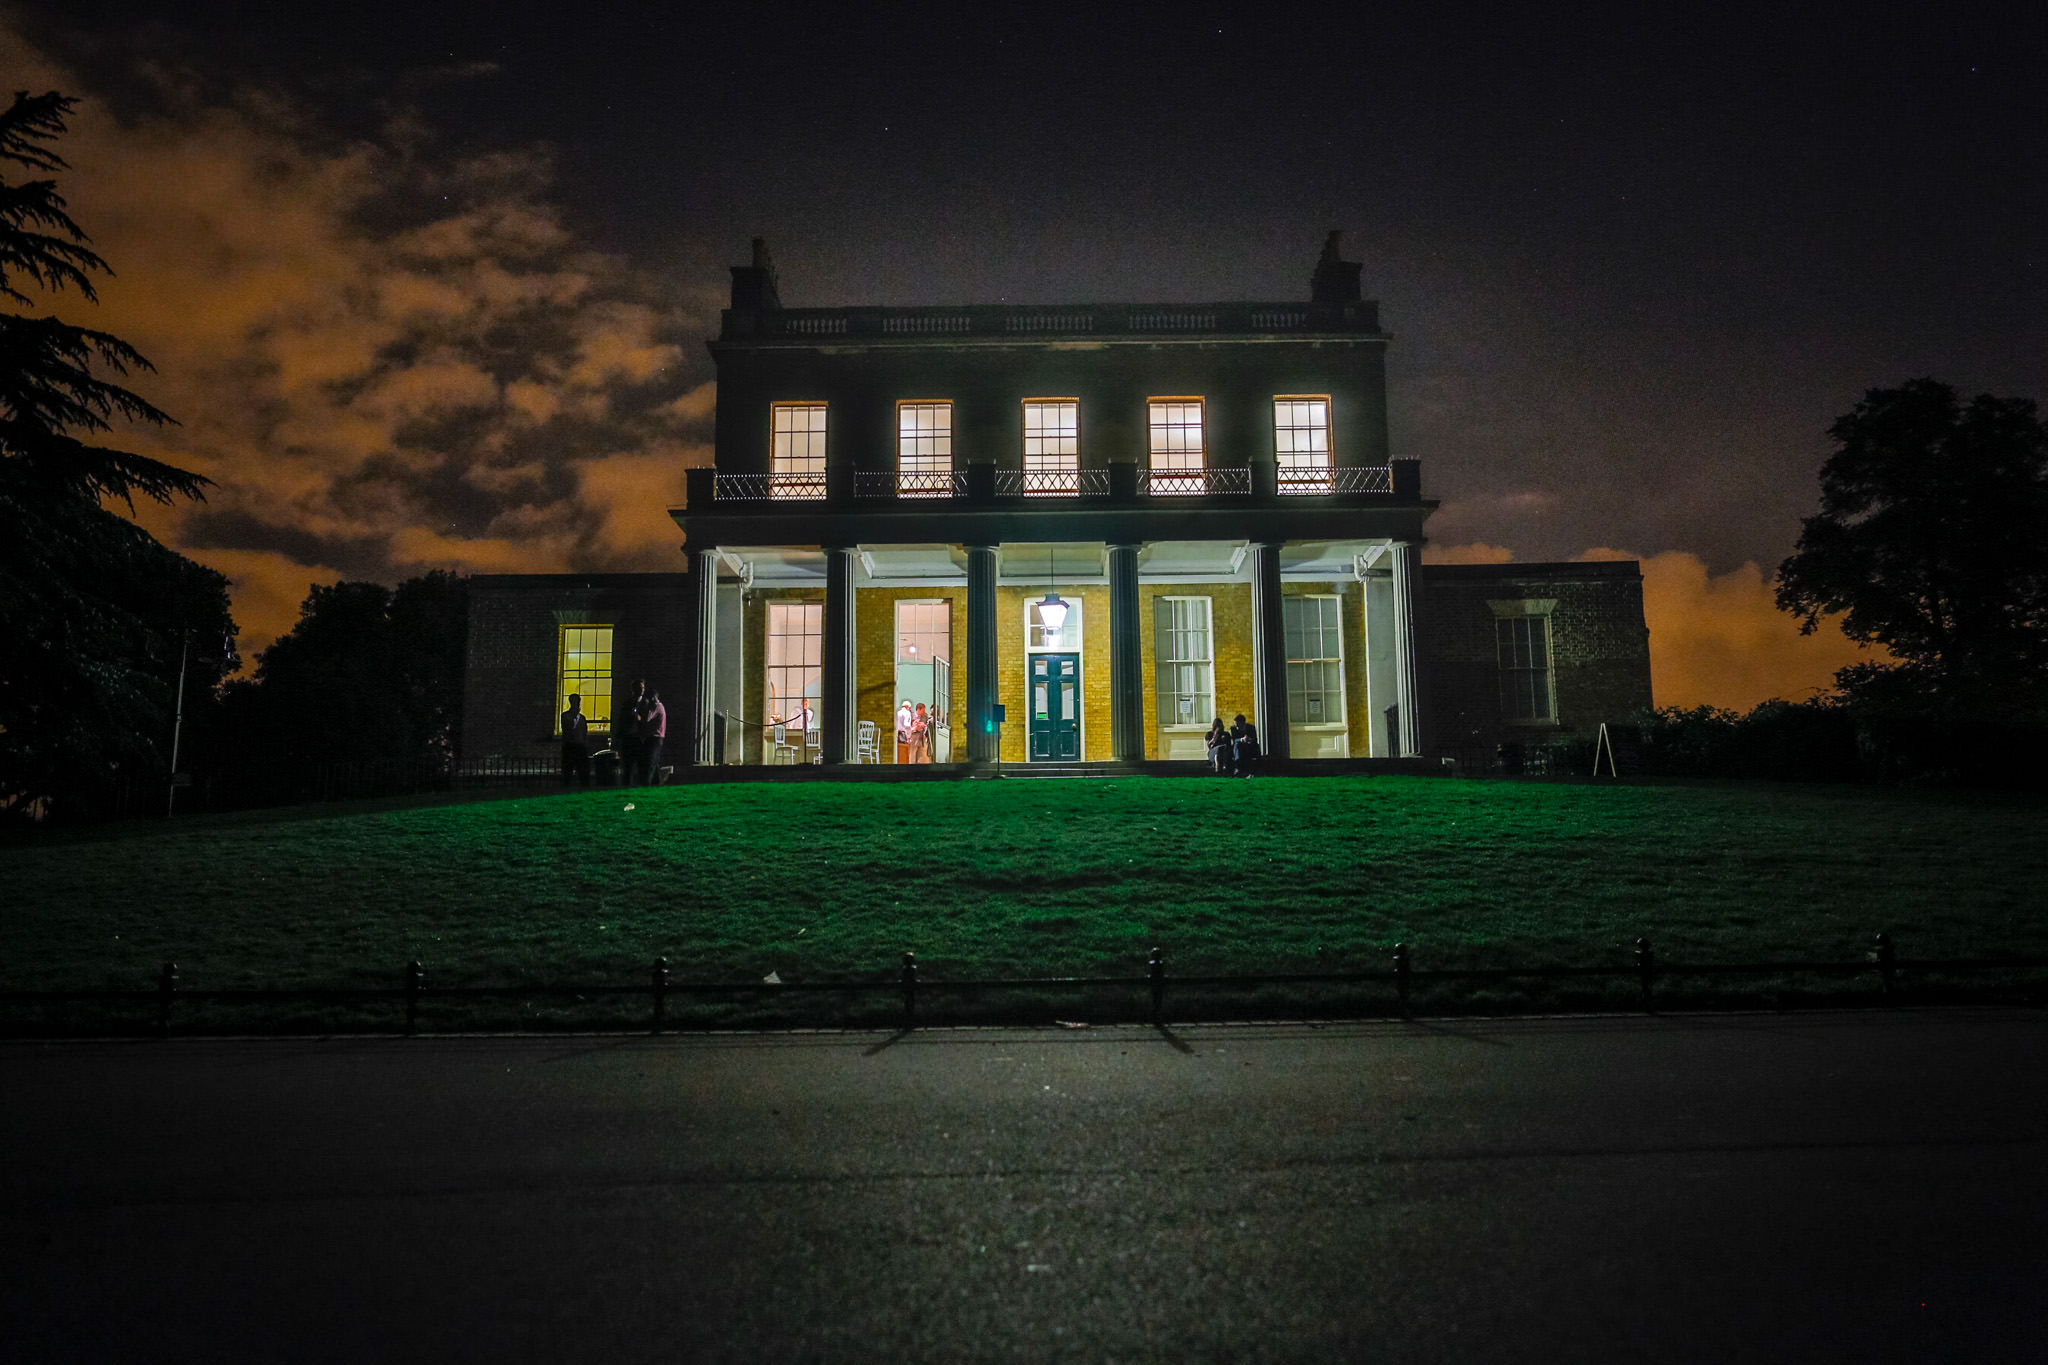 Clissold House wedding venue view in the night